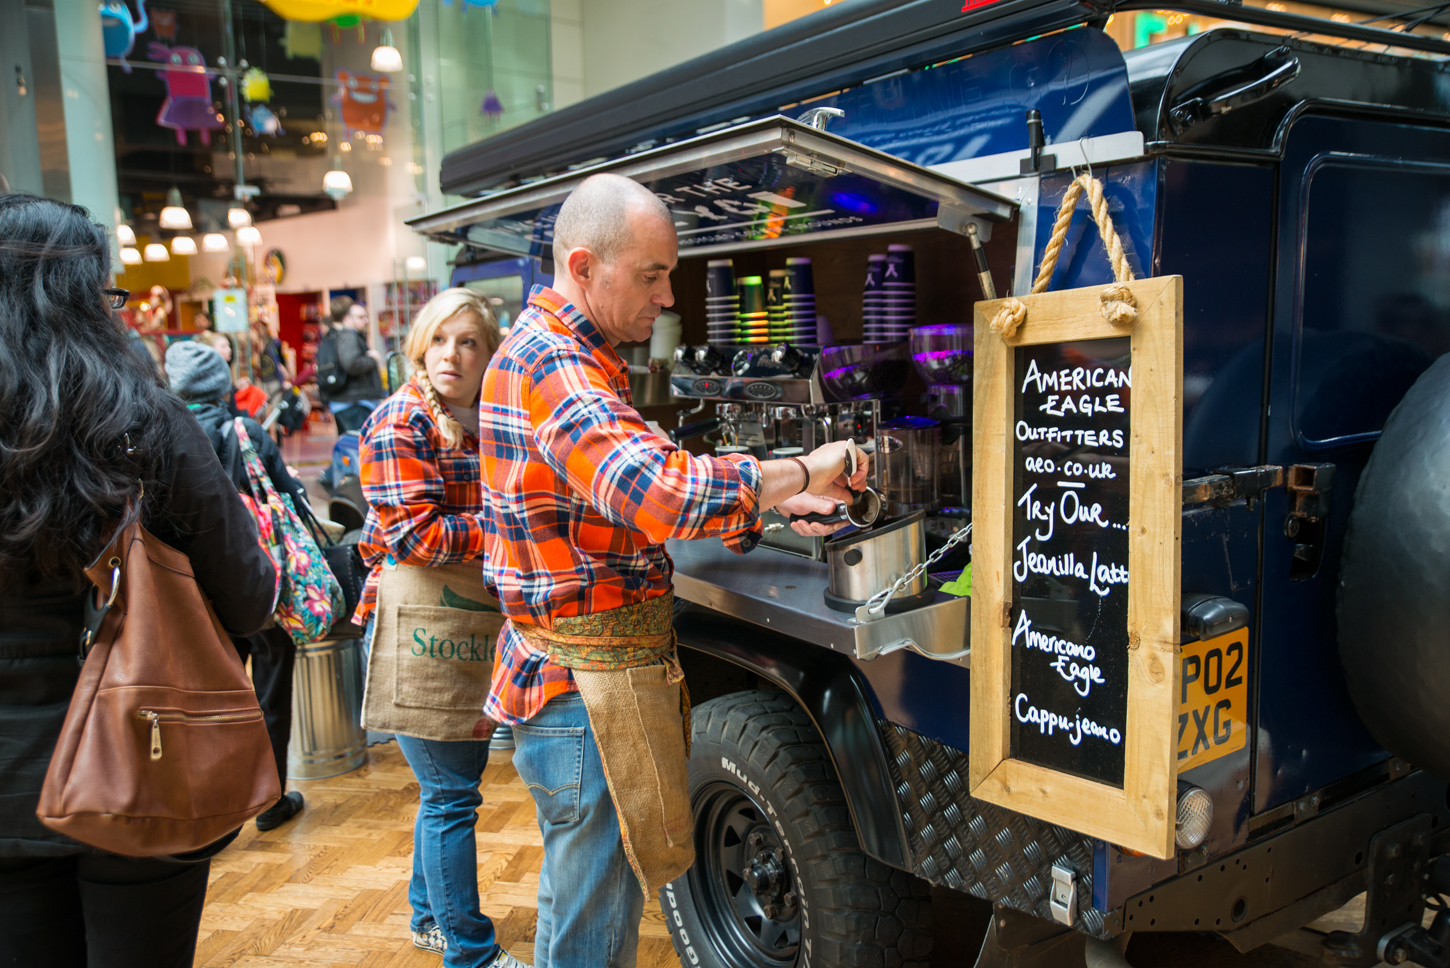 foodtruck at a brand event